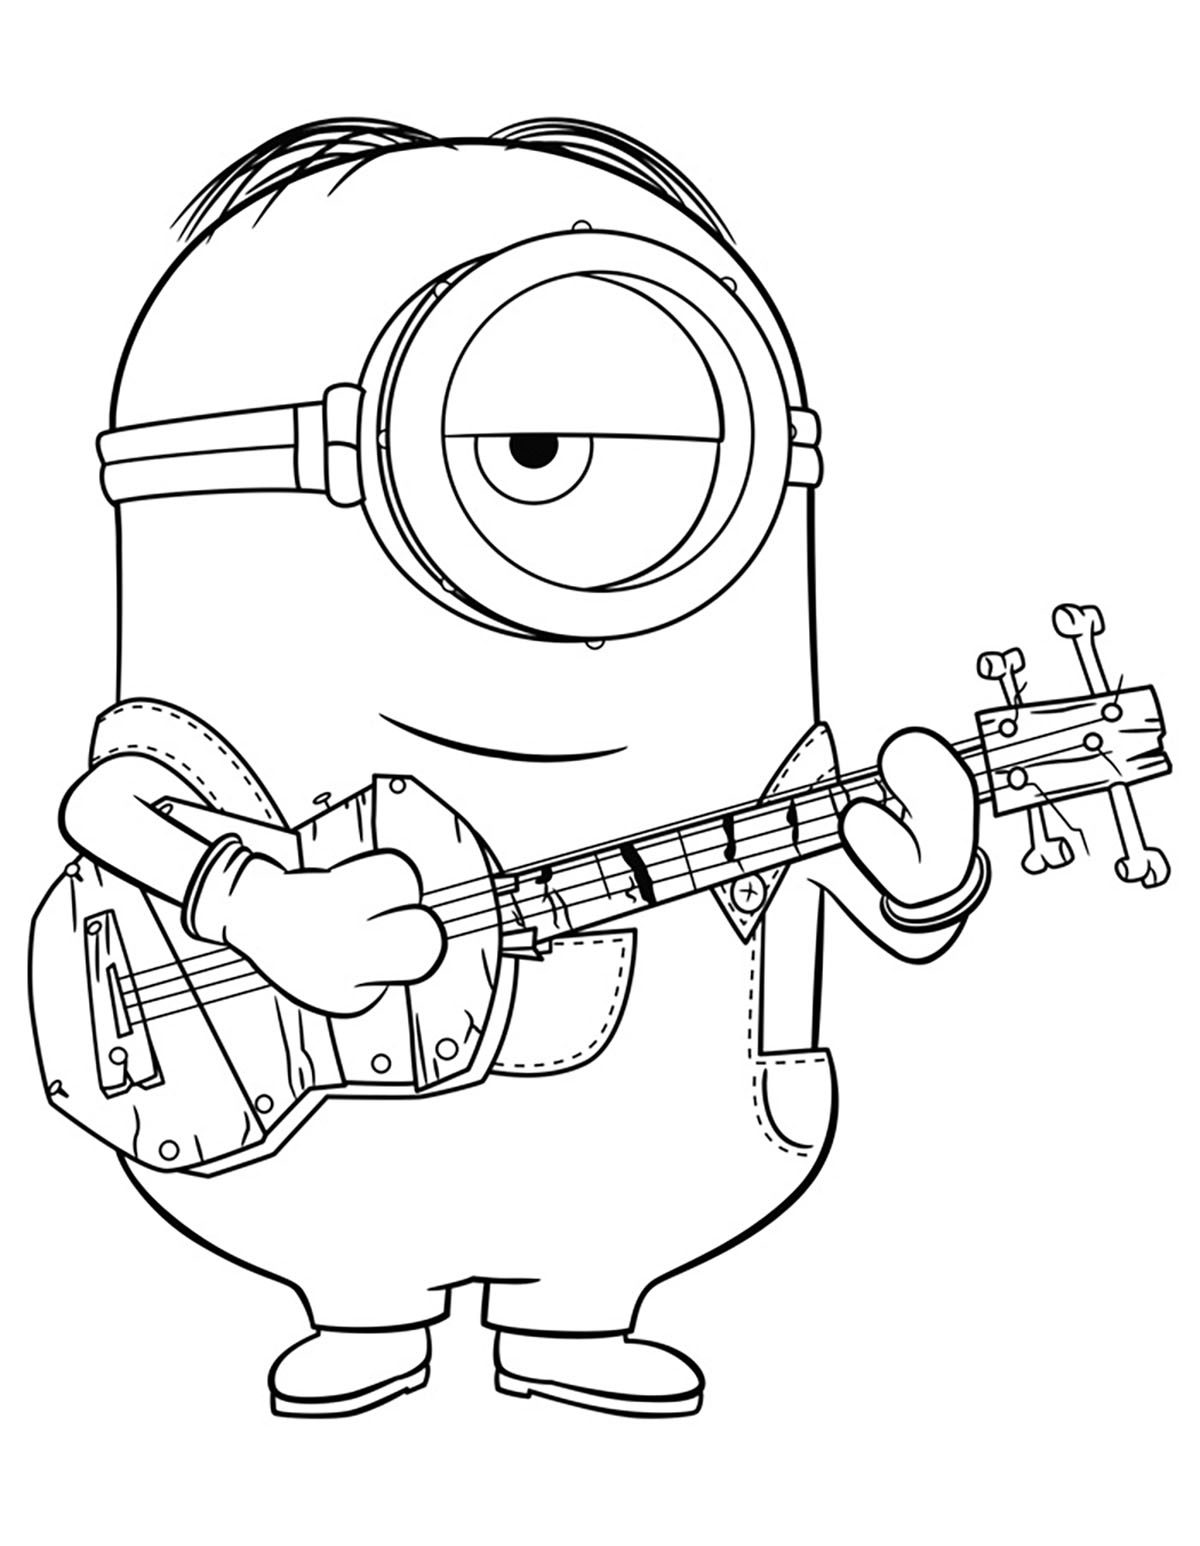 free minion coloring pages minions for kids minions kids coloring pages pages free coloring minion